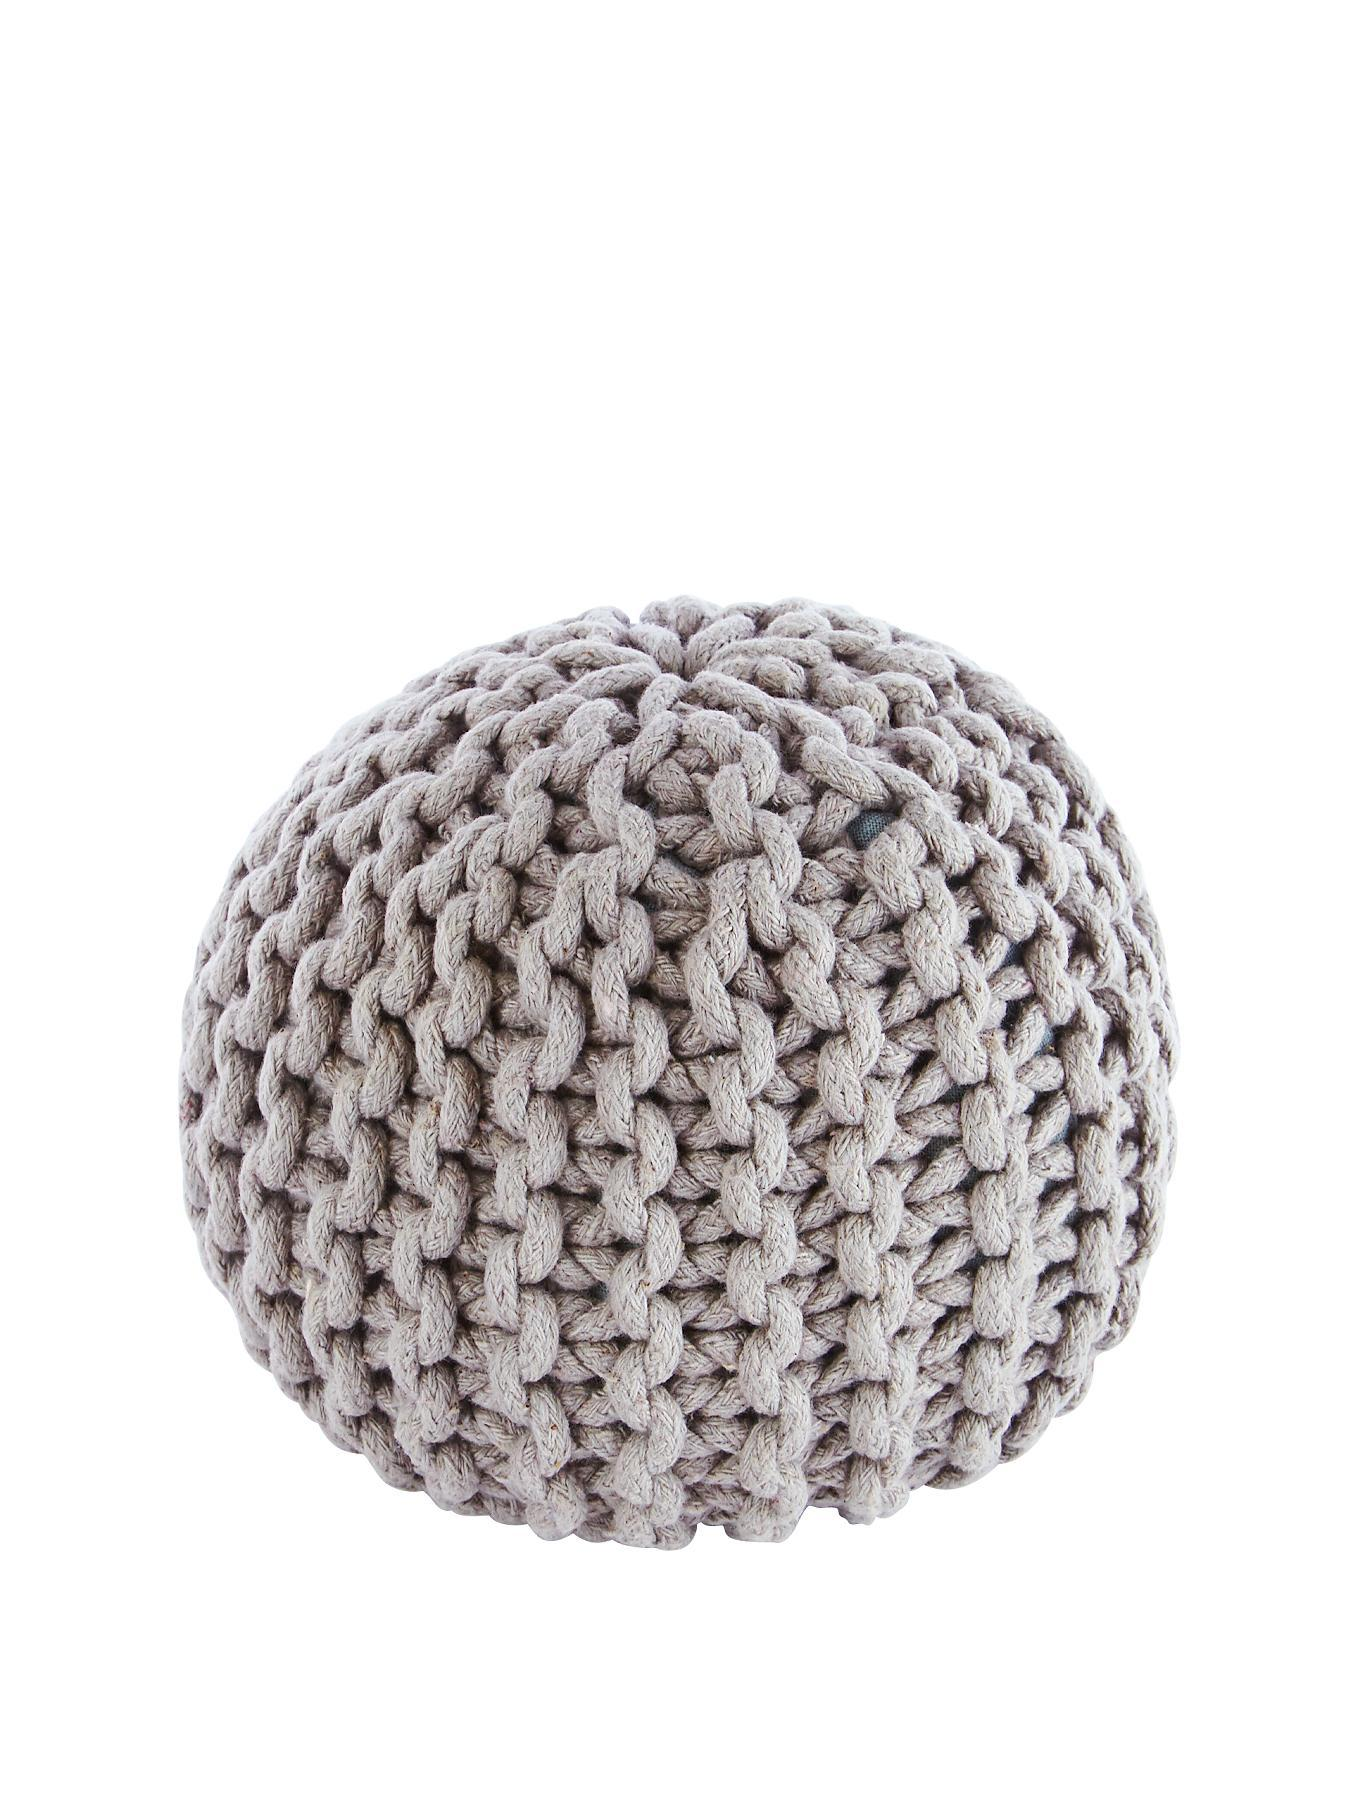 Knitted Door Stop Pod